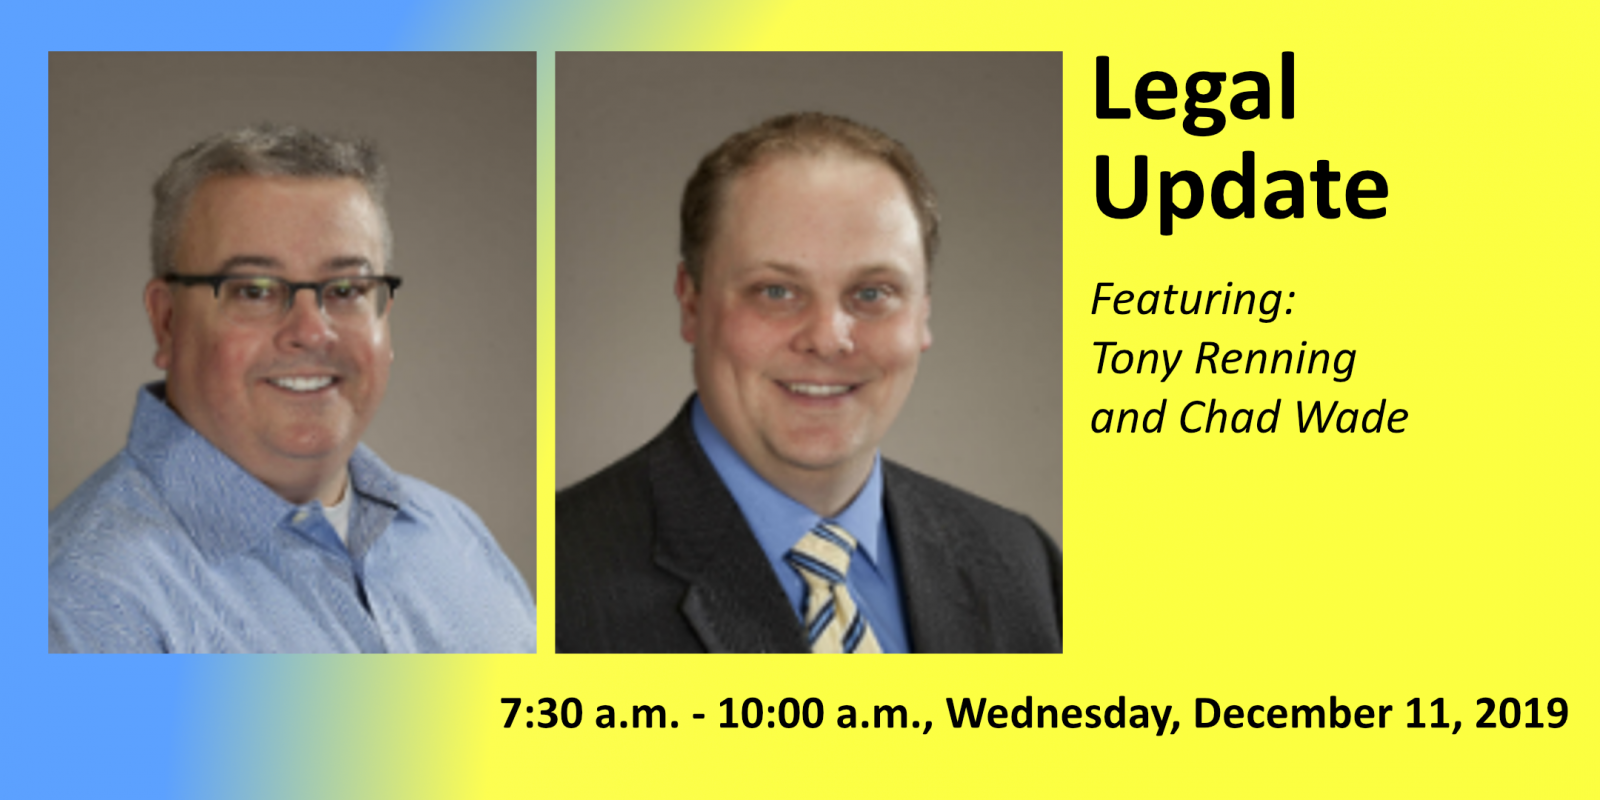 Tony Renning and Chad Lacy promoting Legal Update Dec. 2019 Oshkosh SHRM Chapter Meeting